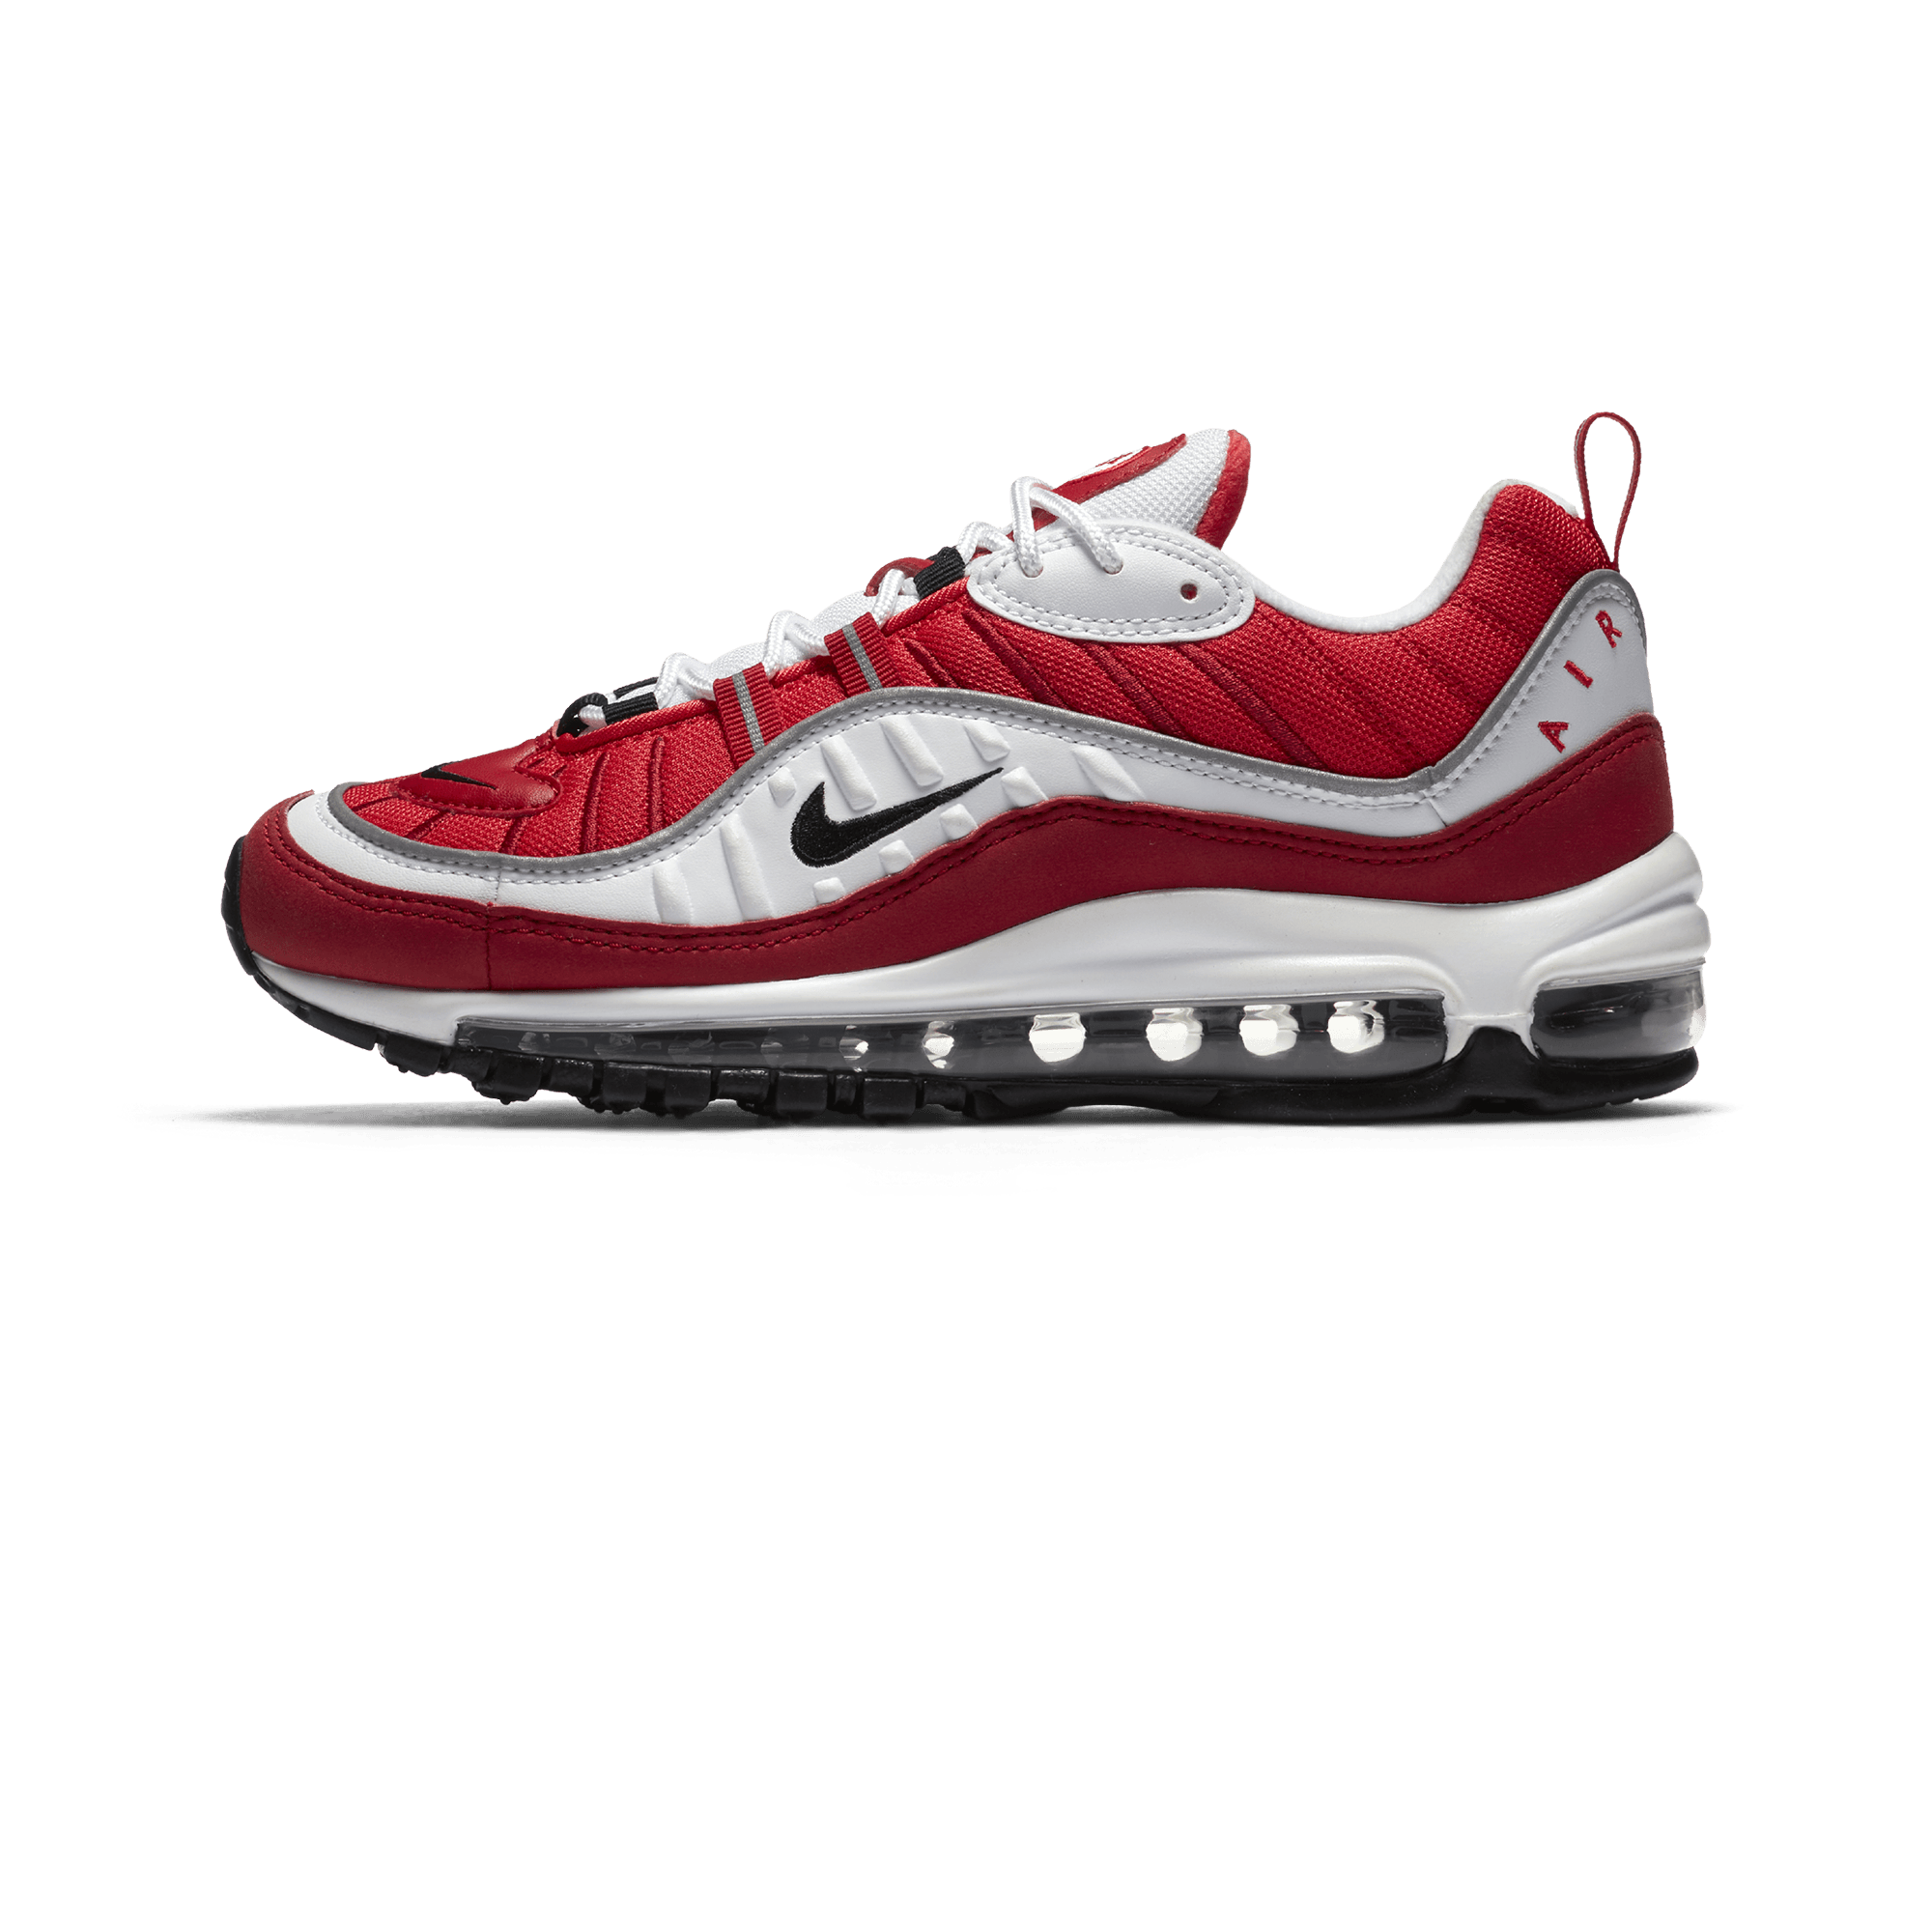 sélection premium 54f50 54cf6 Nike Air Max 98 W white/gym red - Woman | Holypopstore.com